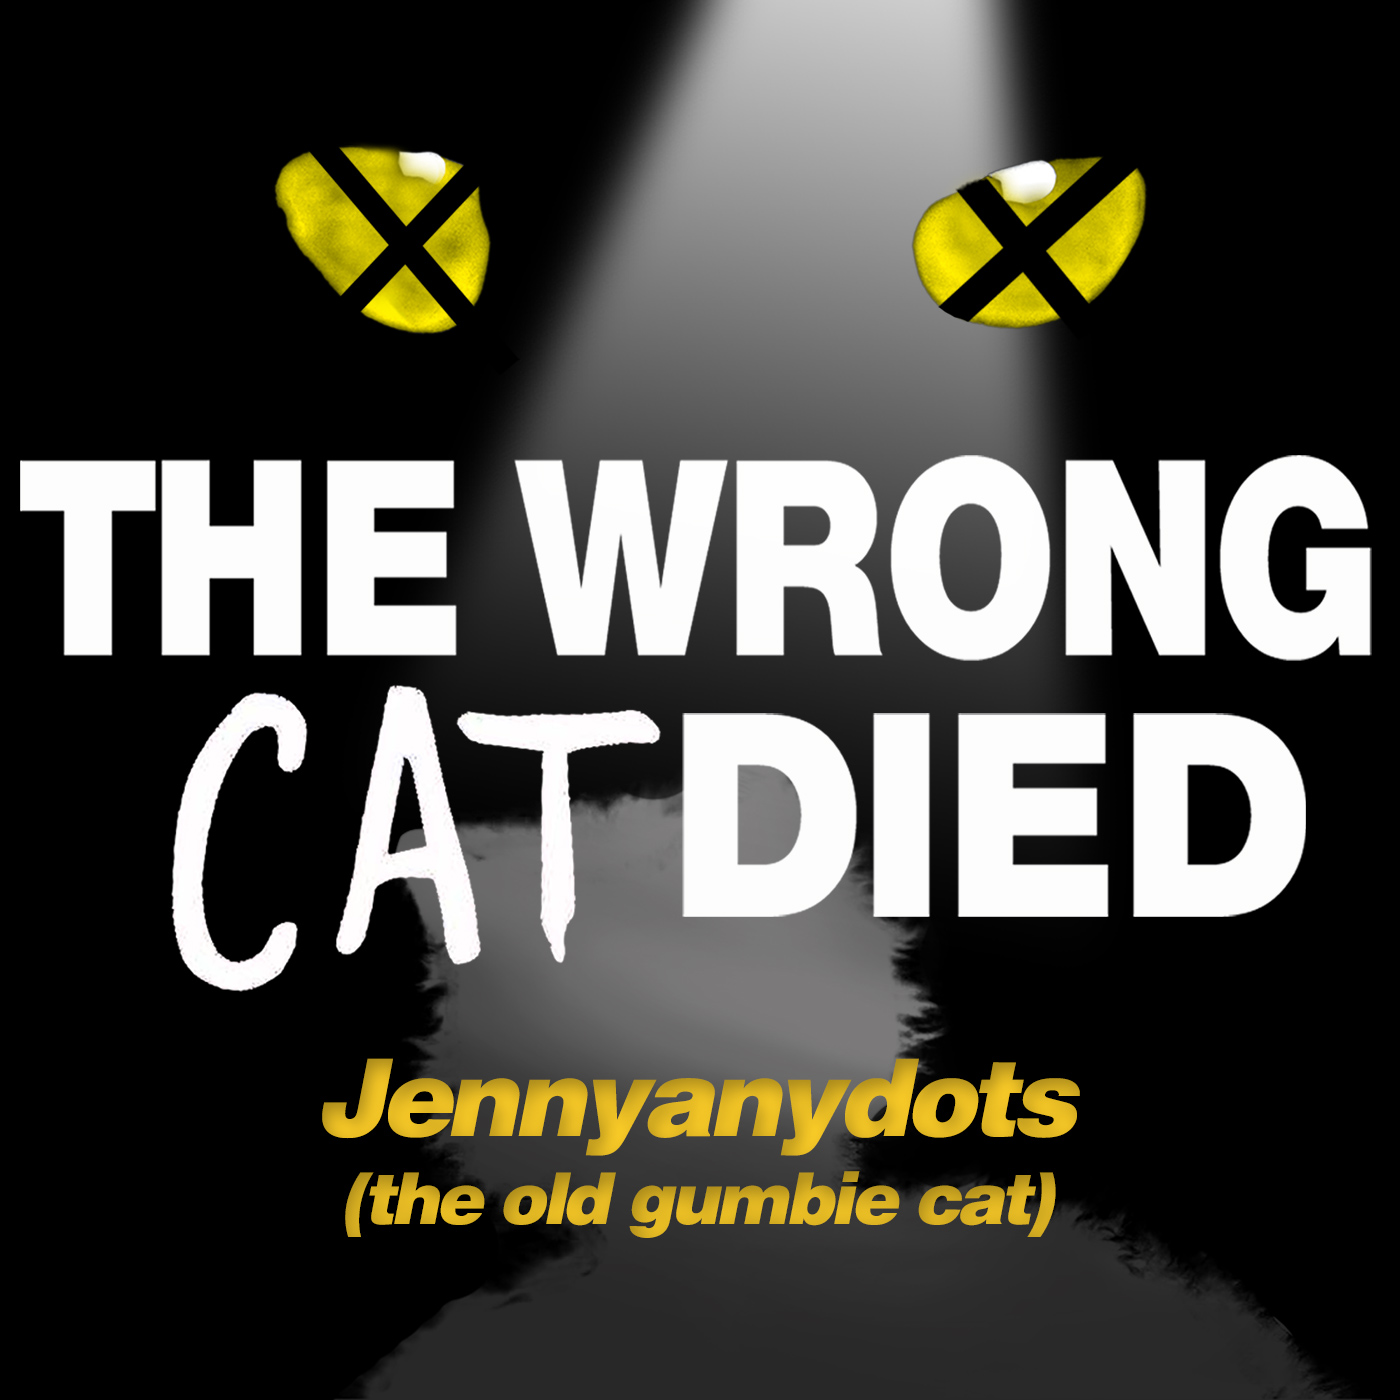 The Wrong Cat Died